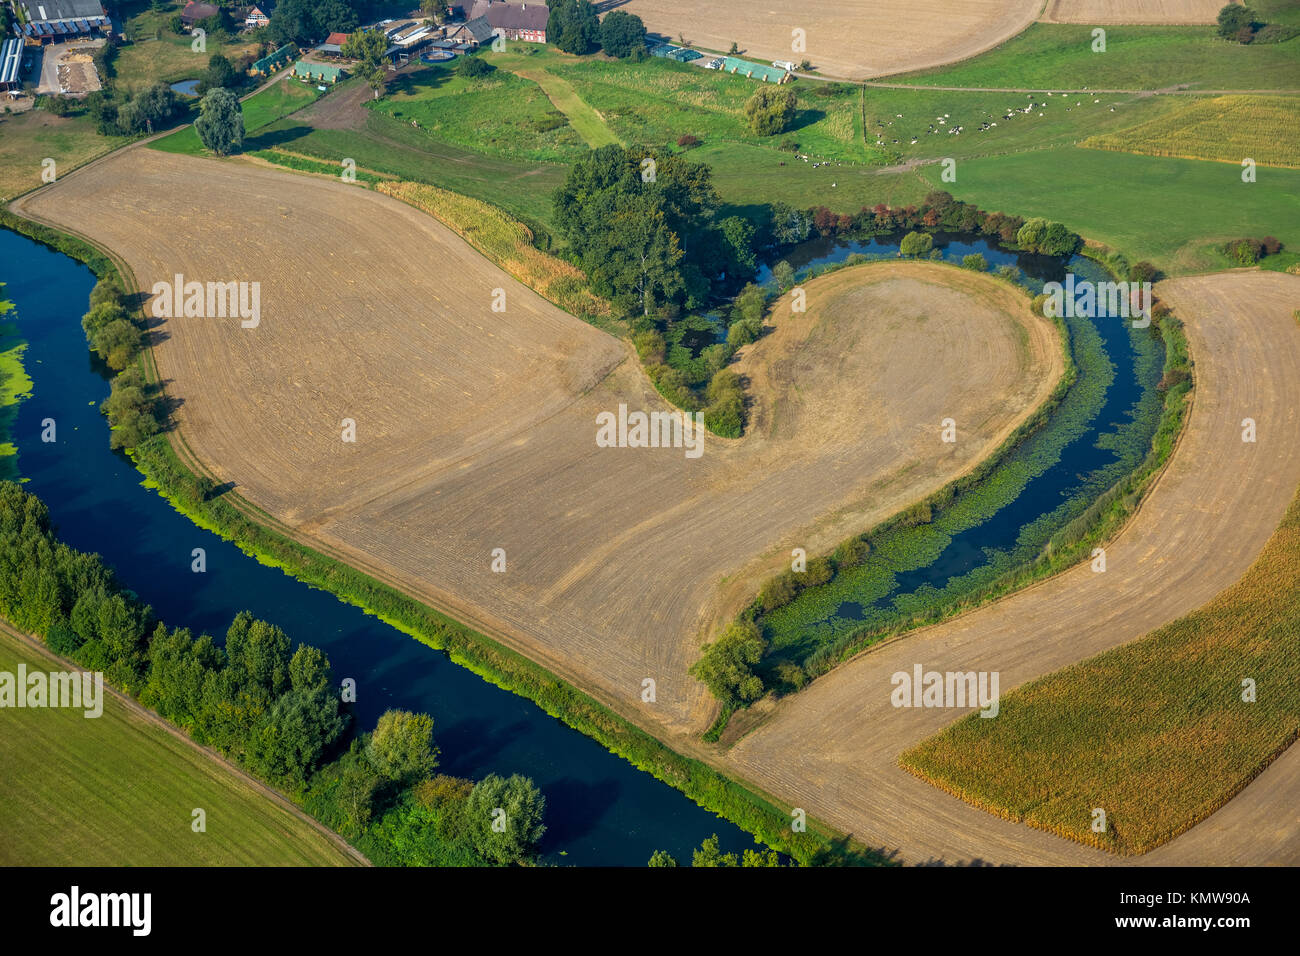 Oxbow lake of the Lippe, half a heart, Lippe meander, Lippeaue,Lippe lawn, hedges, nature reserve, Waltrop, Ruhr - Stock Image